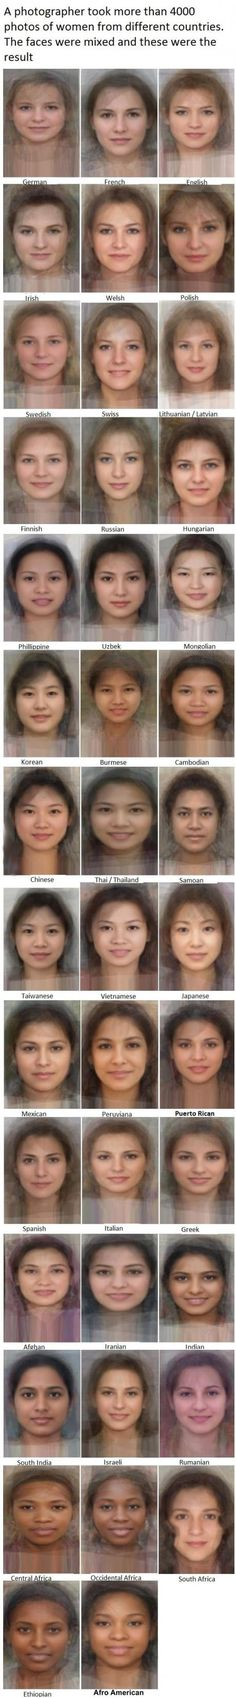 average faces of women from different countries - pretty neat!